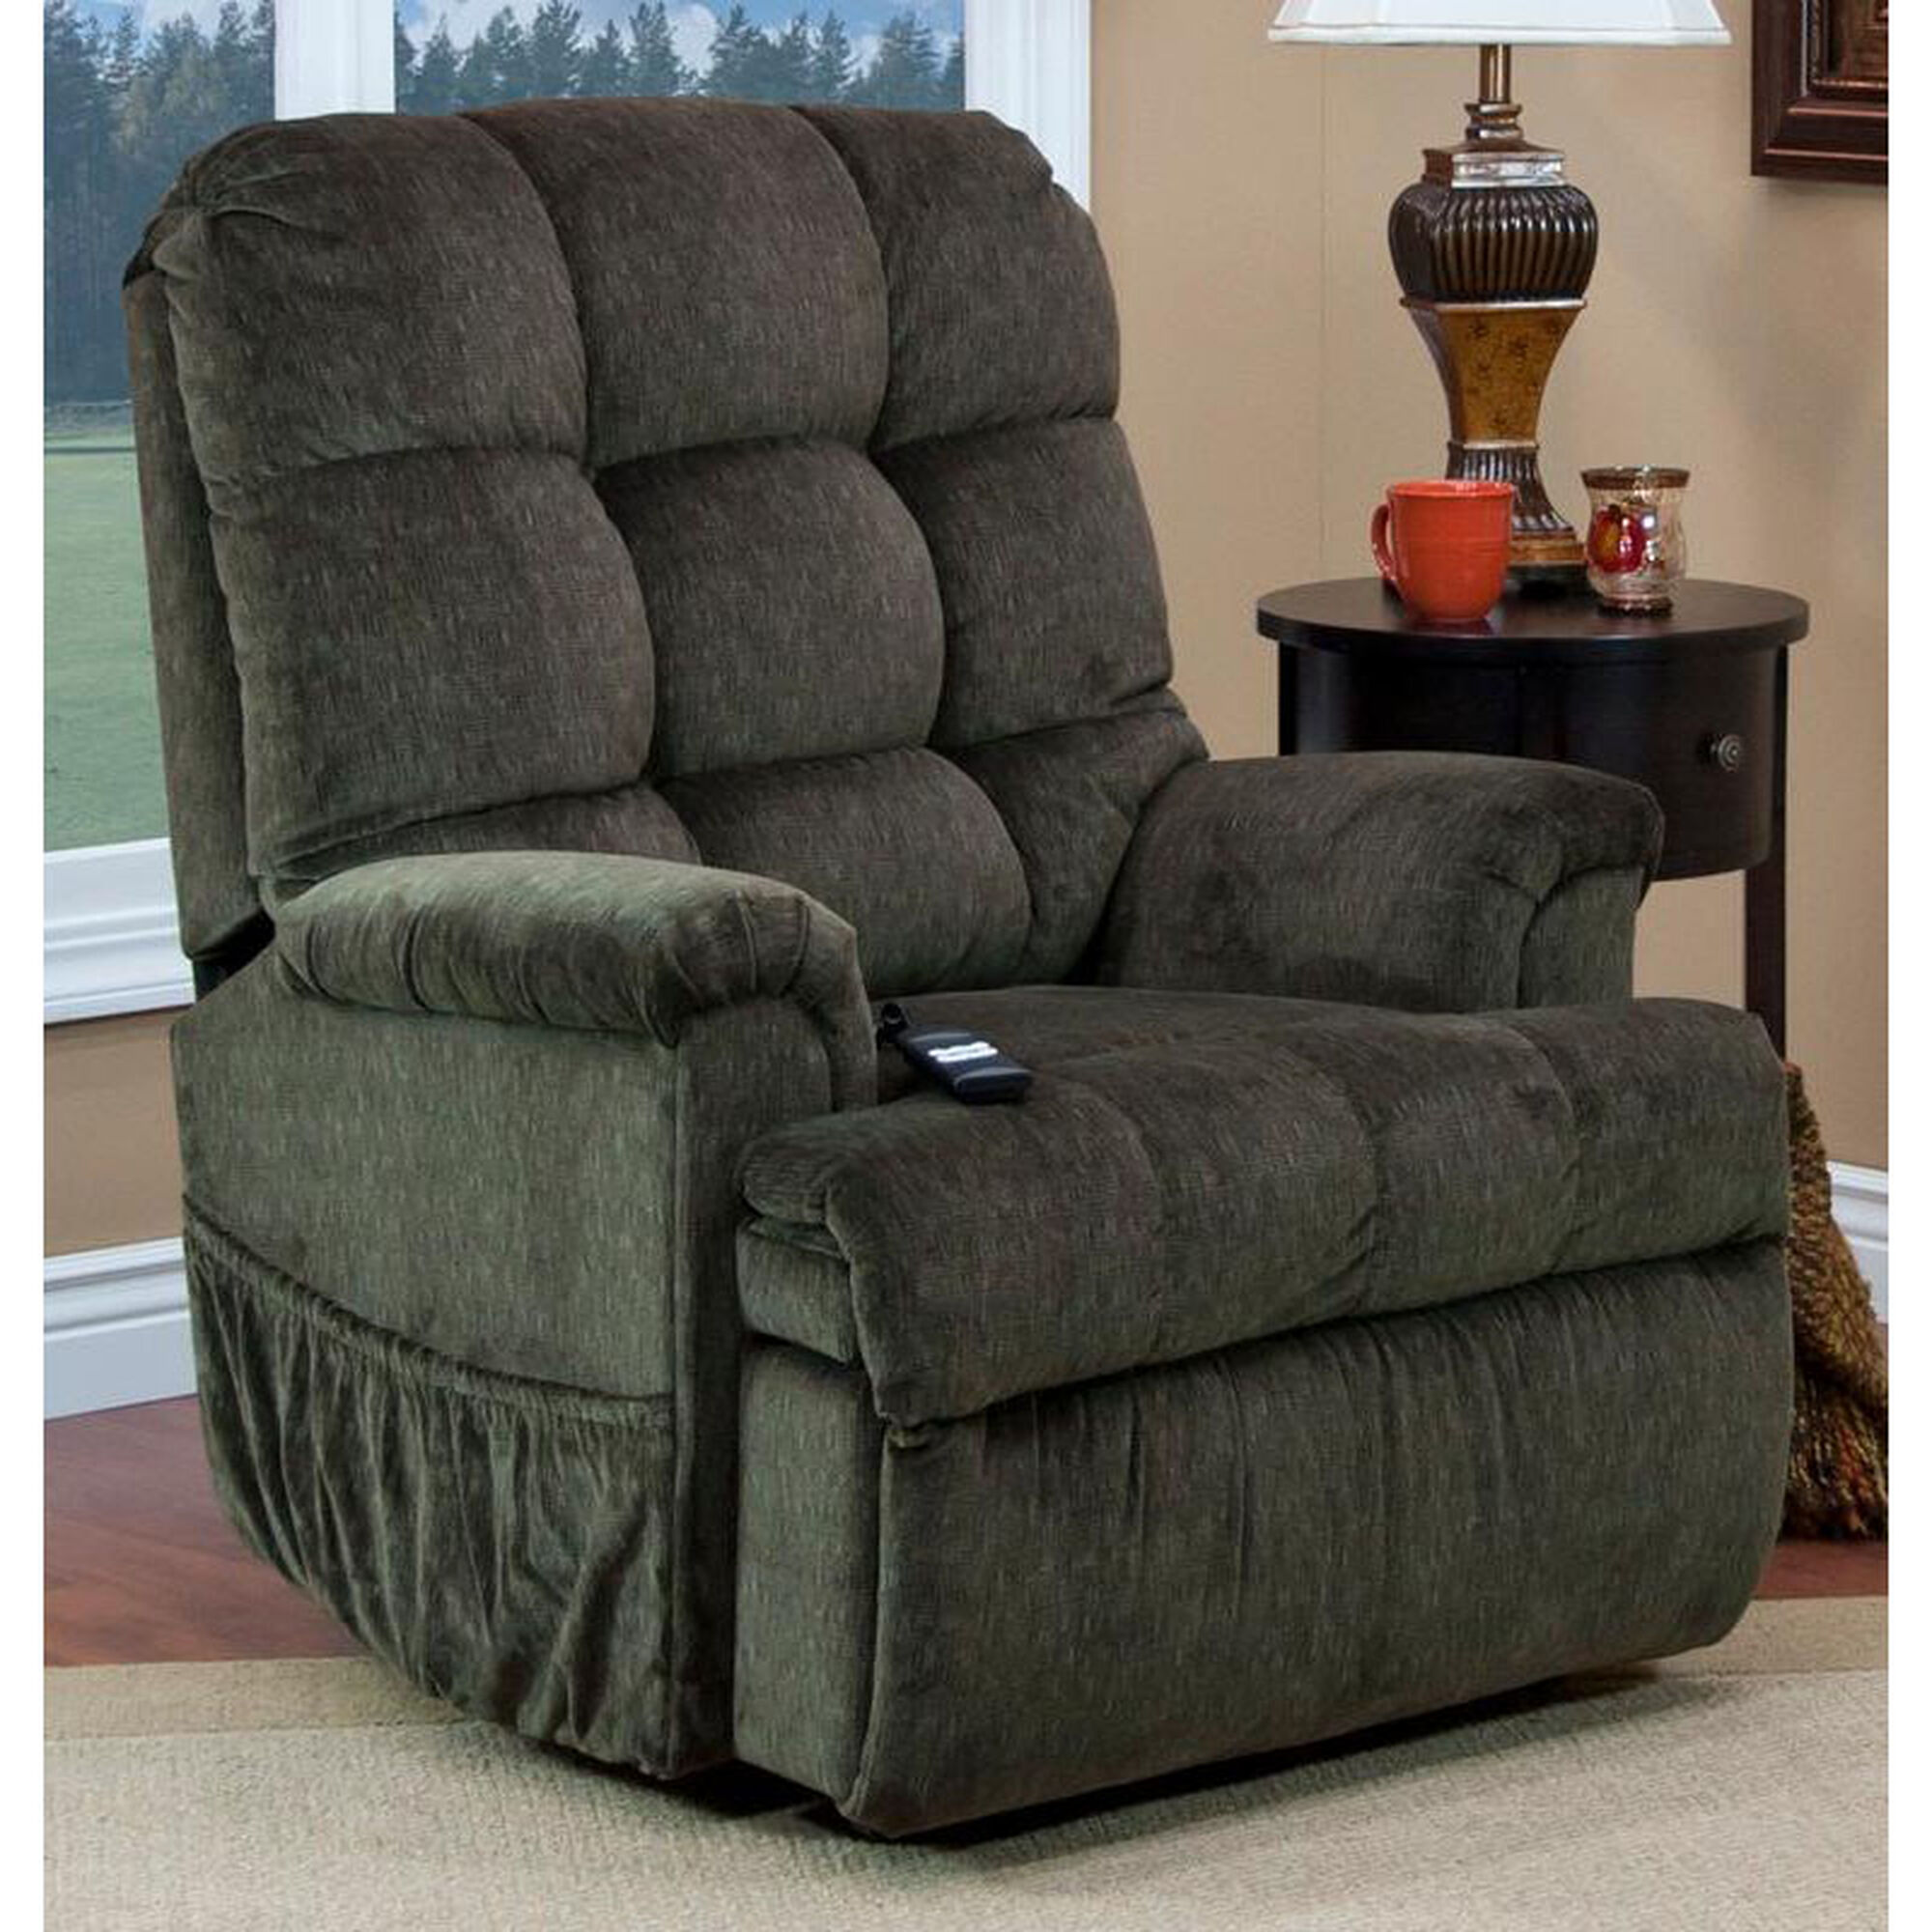 Remarkable Reclining Sleeper Power Lift Chair With Tv Position And Full Chaise Pad Cabo Sage Fabric Onthecornerstone Fun Painted Chair Ideas Images Onthecornerstoneorg